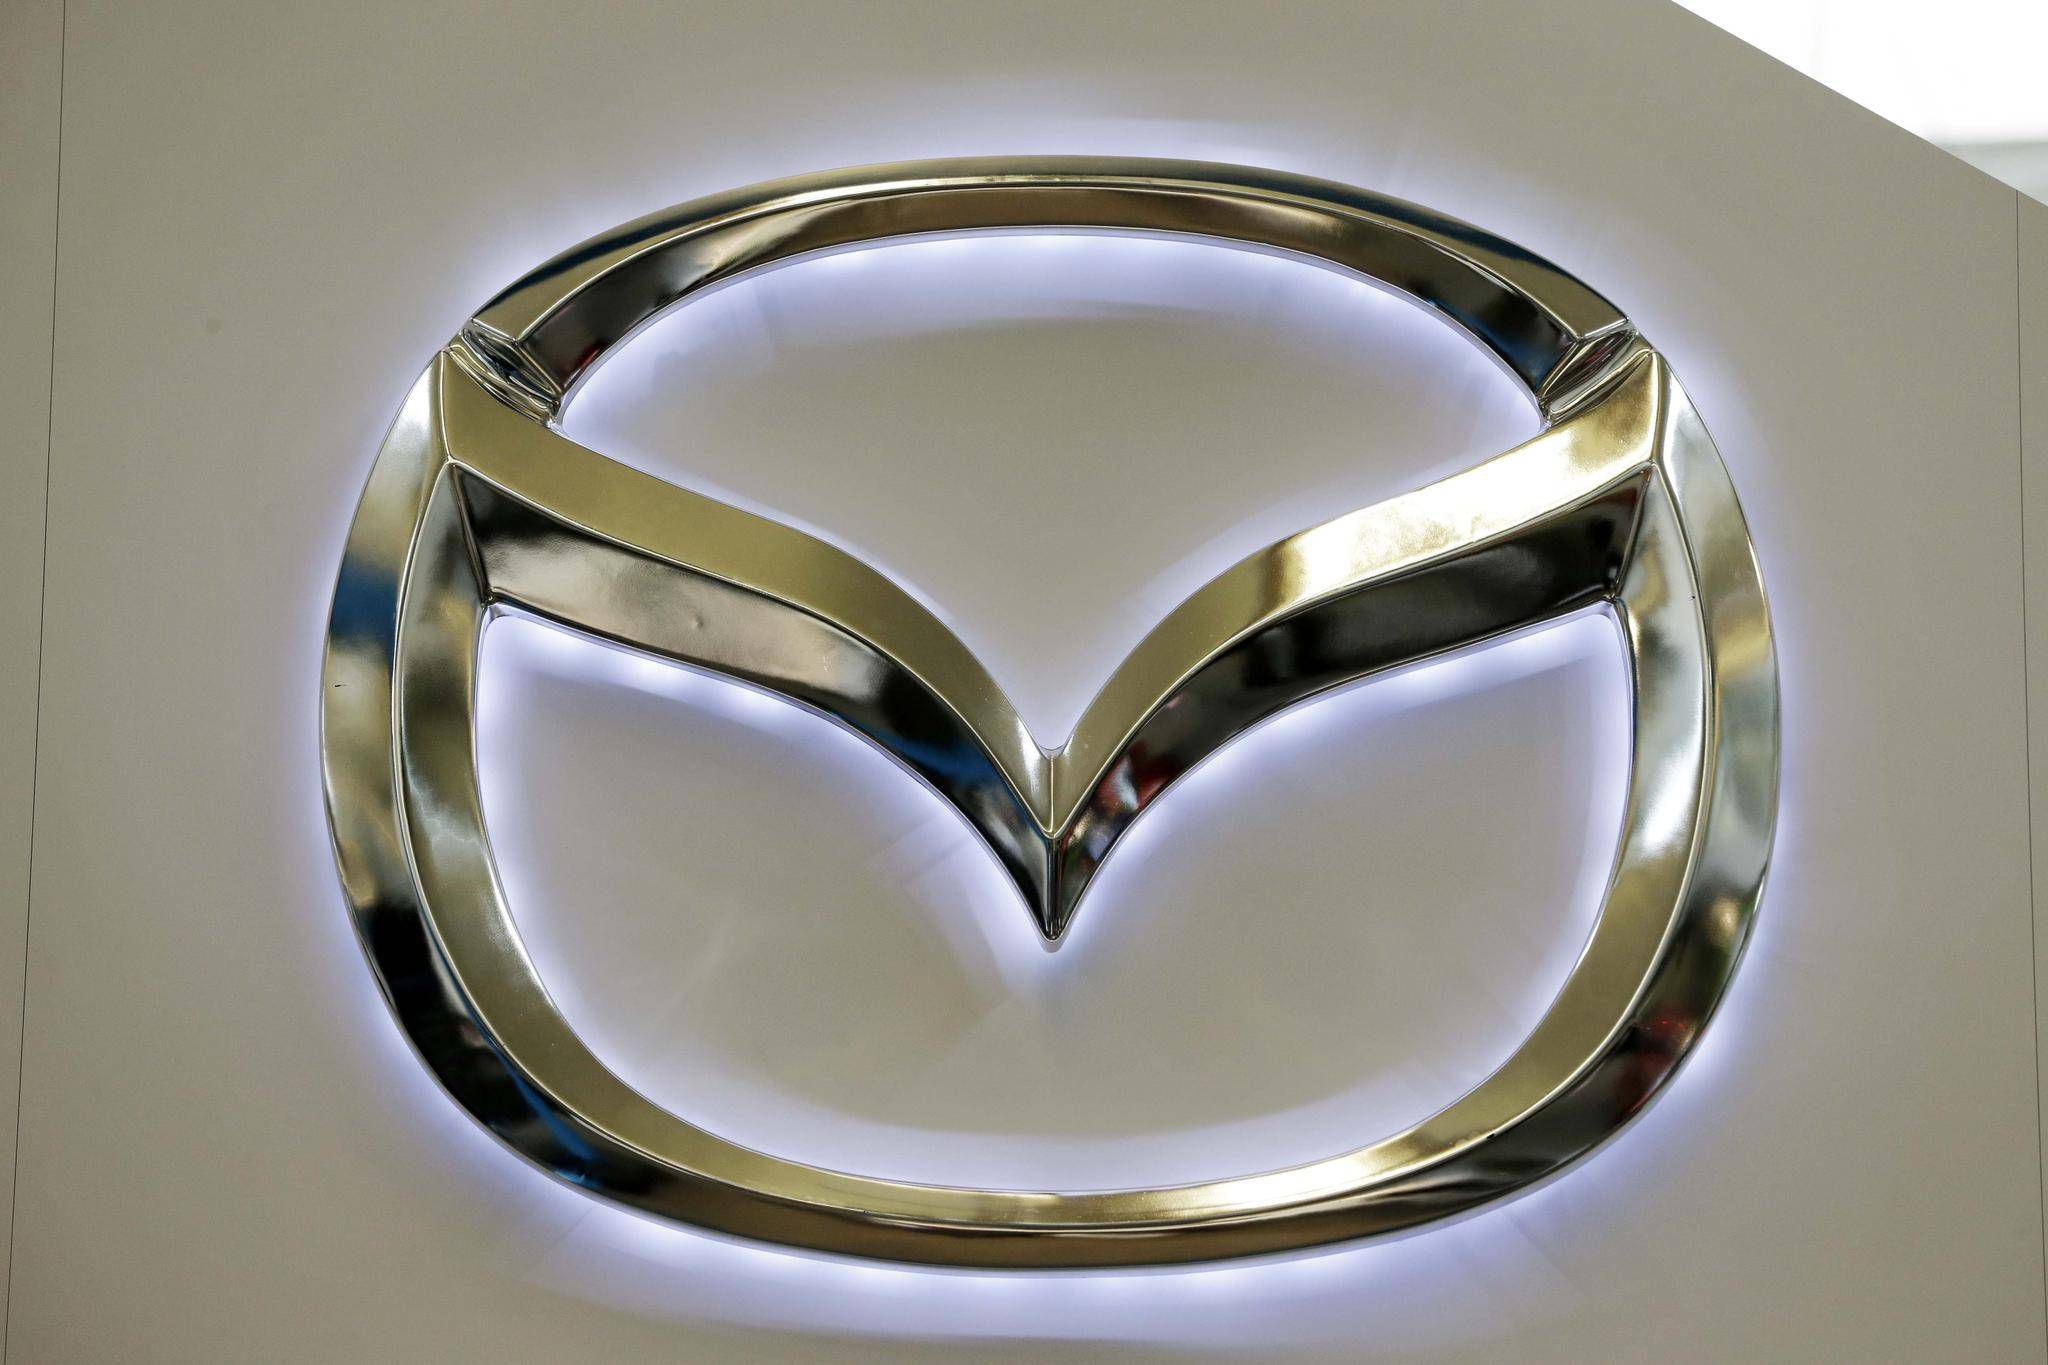 Mazda to recall 49 million cars because ignition switches could mazda to recall 49 million cars because ignition switches could catch fire the globe and mail biocorpaavc Gallery